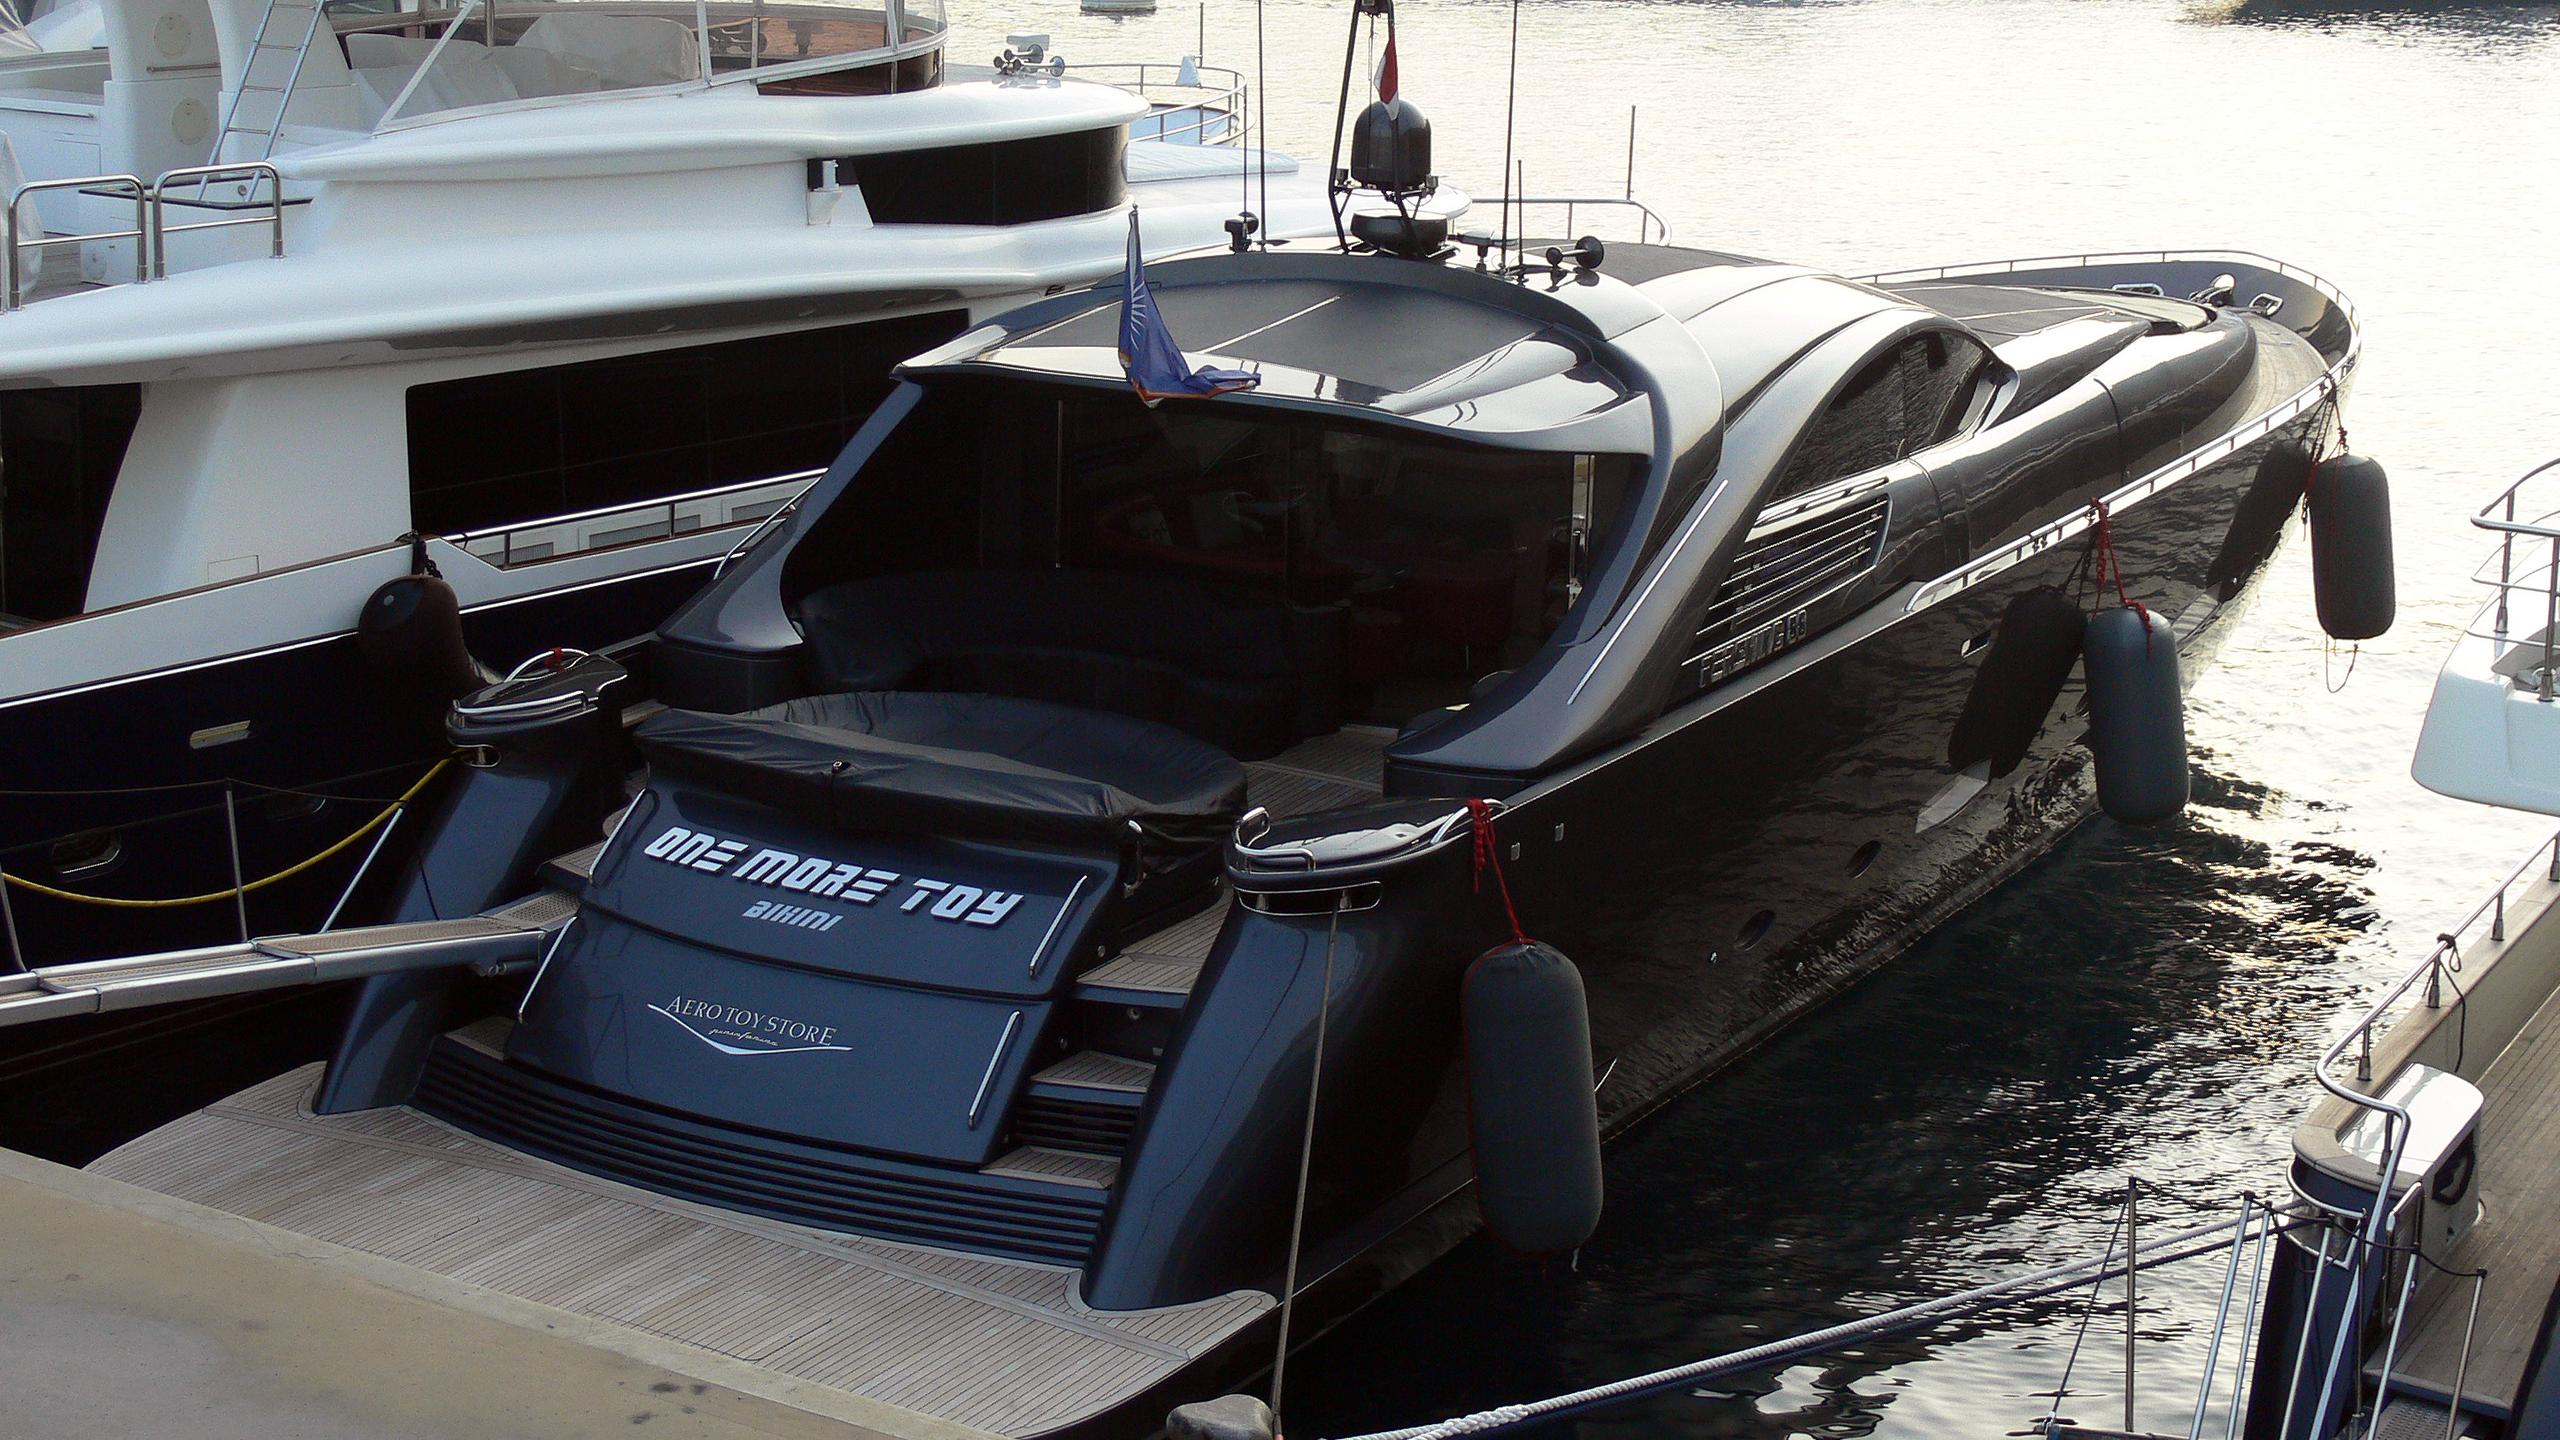 one-more-toy-motor-yacht-pershing-88-2000-27m-rear